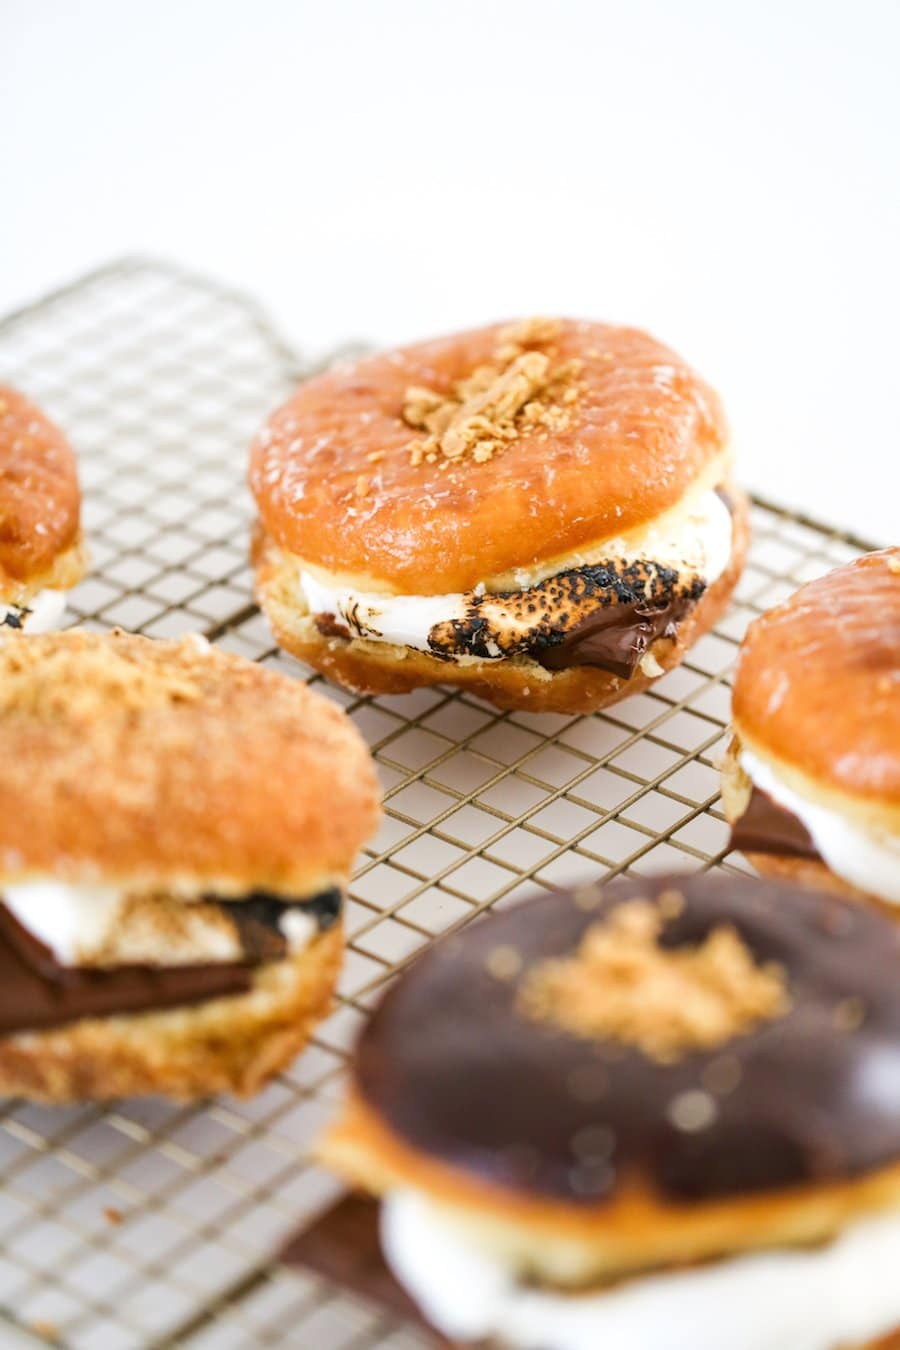 S'mores Donuts, S'mores Donuts Recipe, Store Bought Donuts, Easy S'mores Donuts, Roasting Marshmallows, Firepit, S'mores Summer, Salty Canary